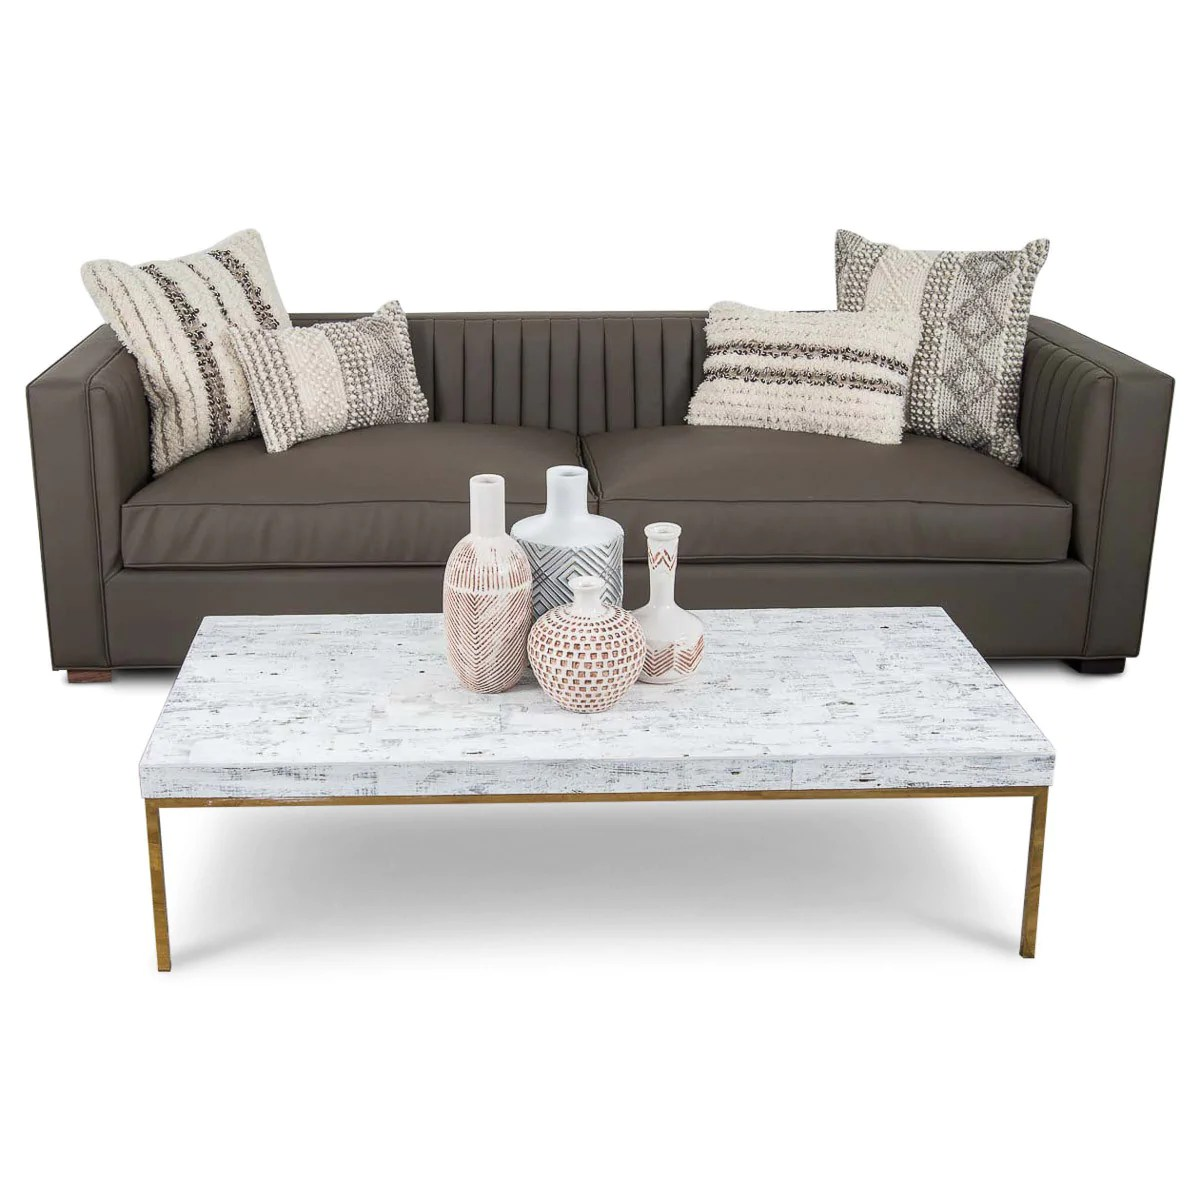 Fullsize Of Faux Leather Couch